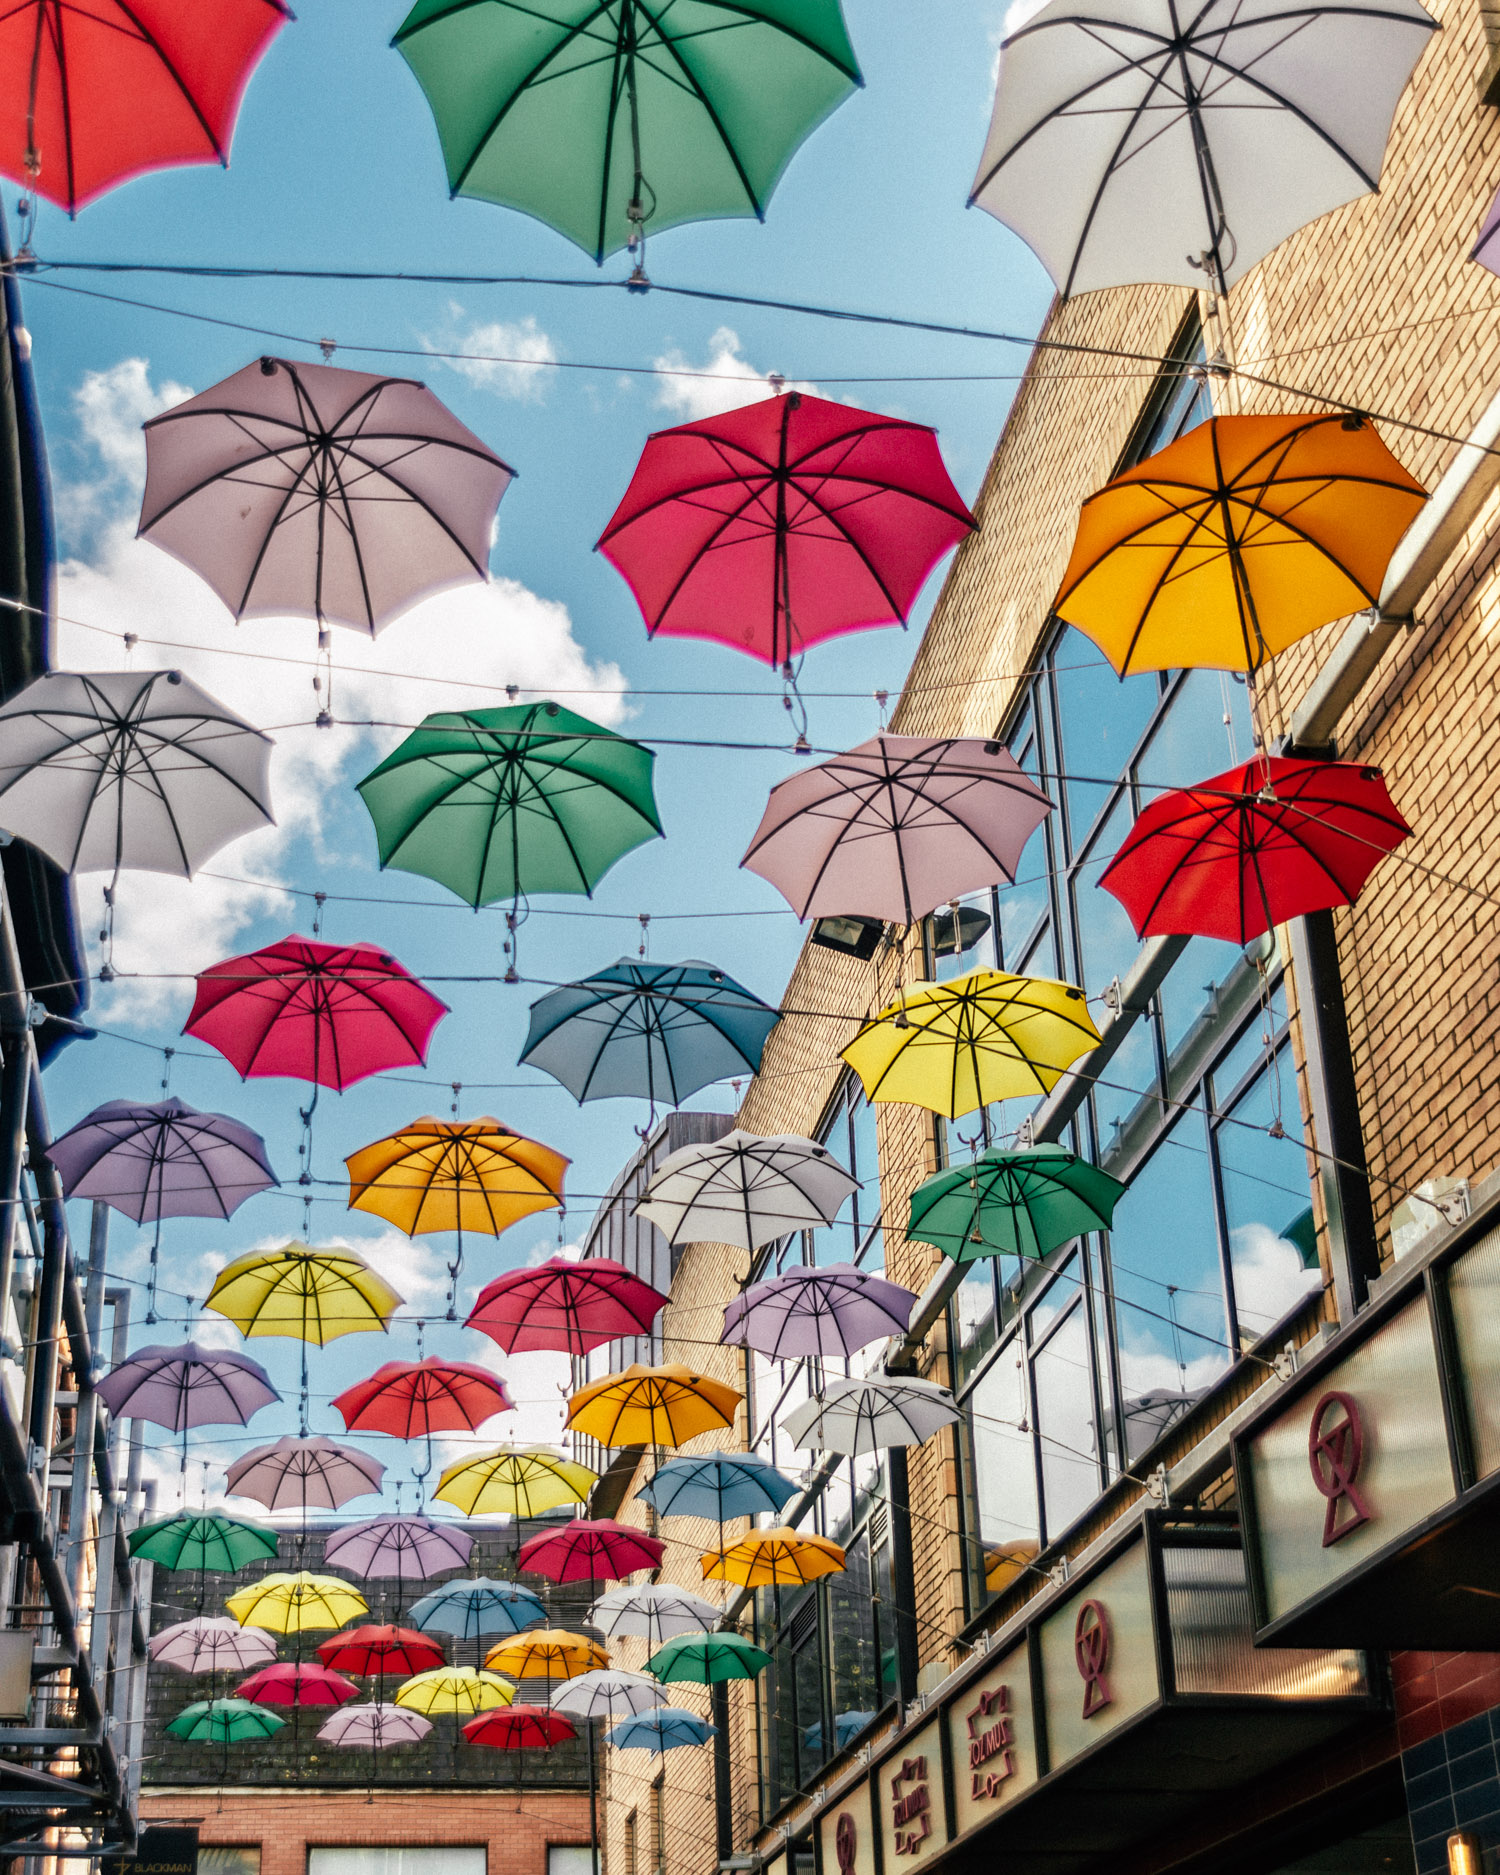 Roof of colorful umbrellas in Dublin, Ireland